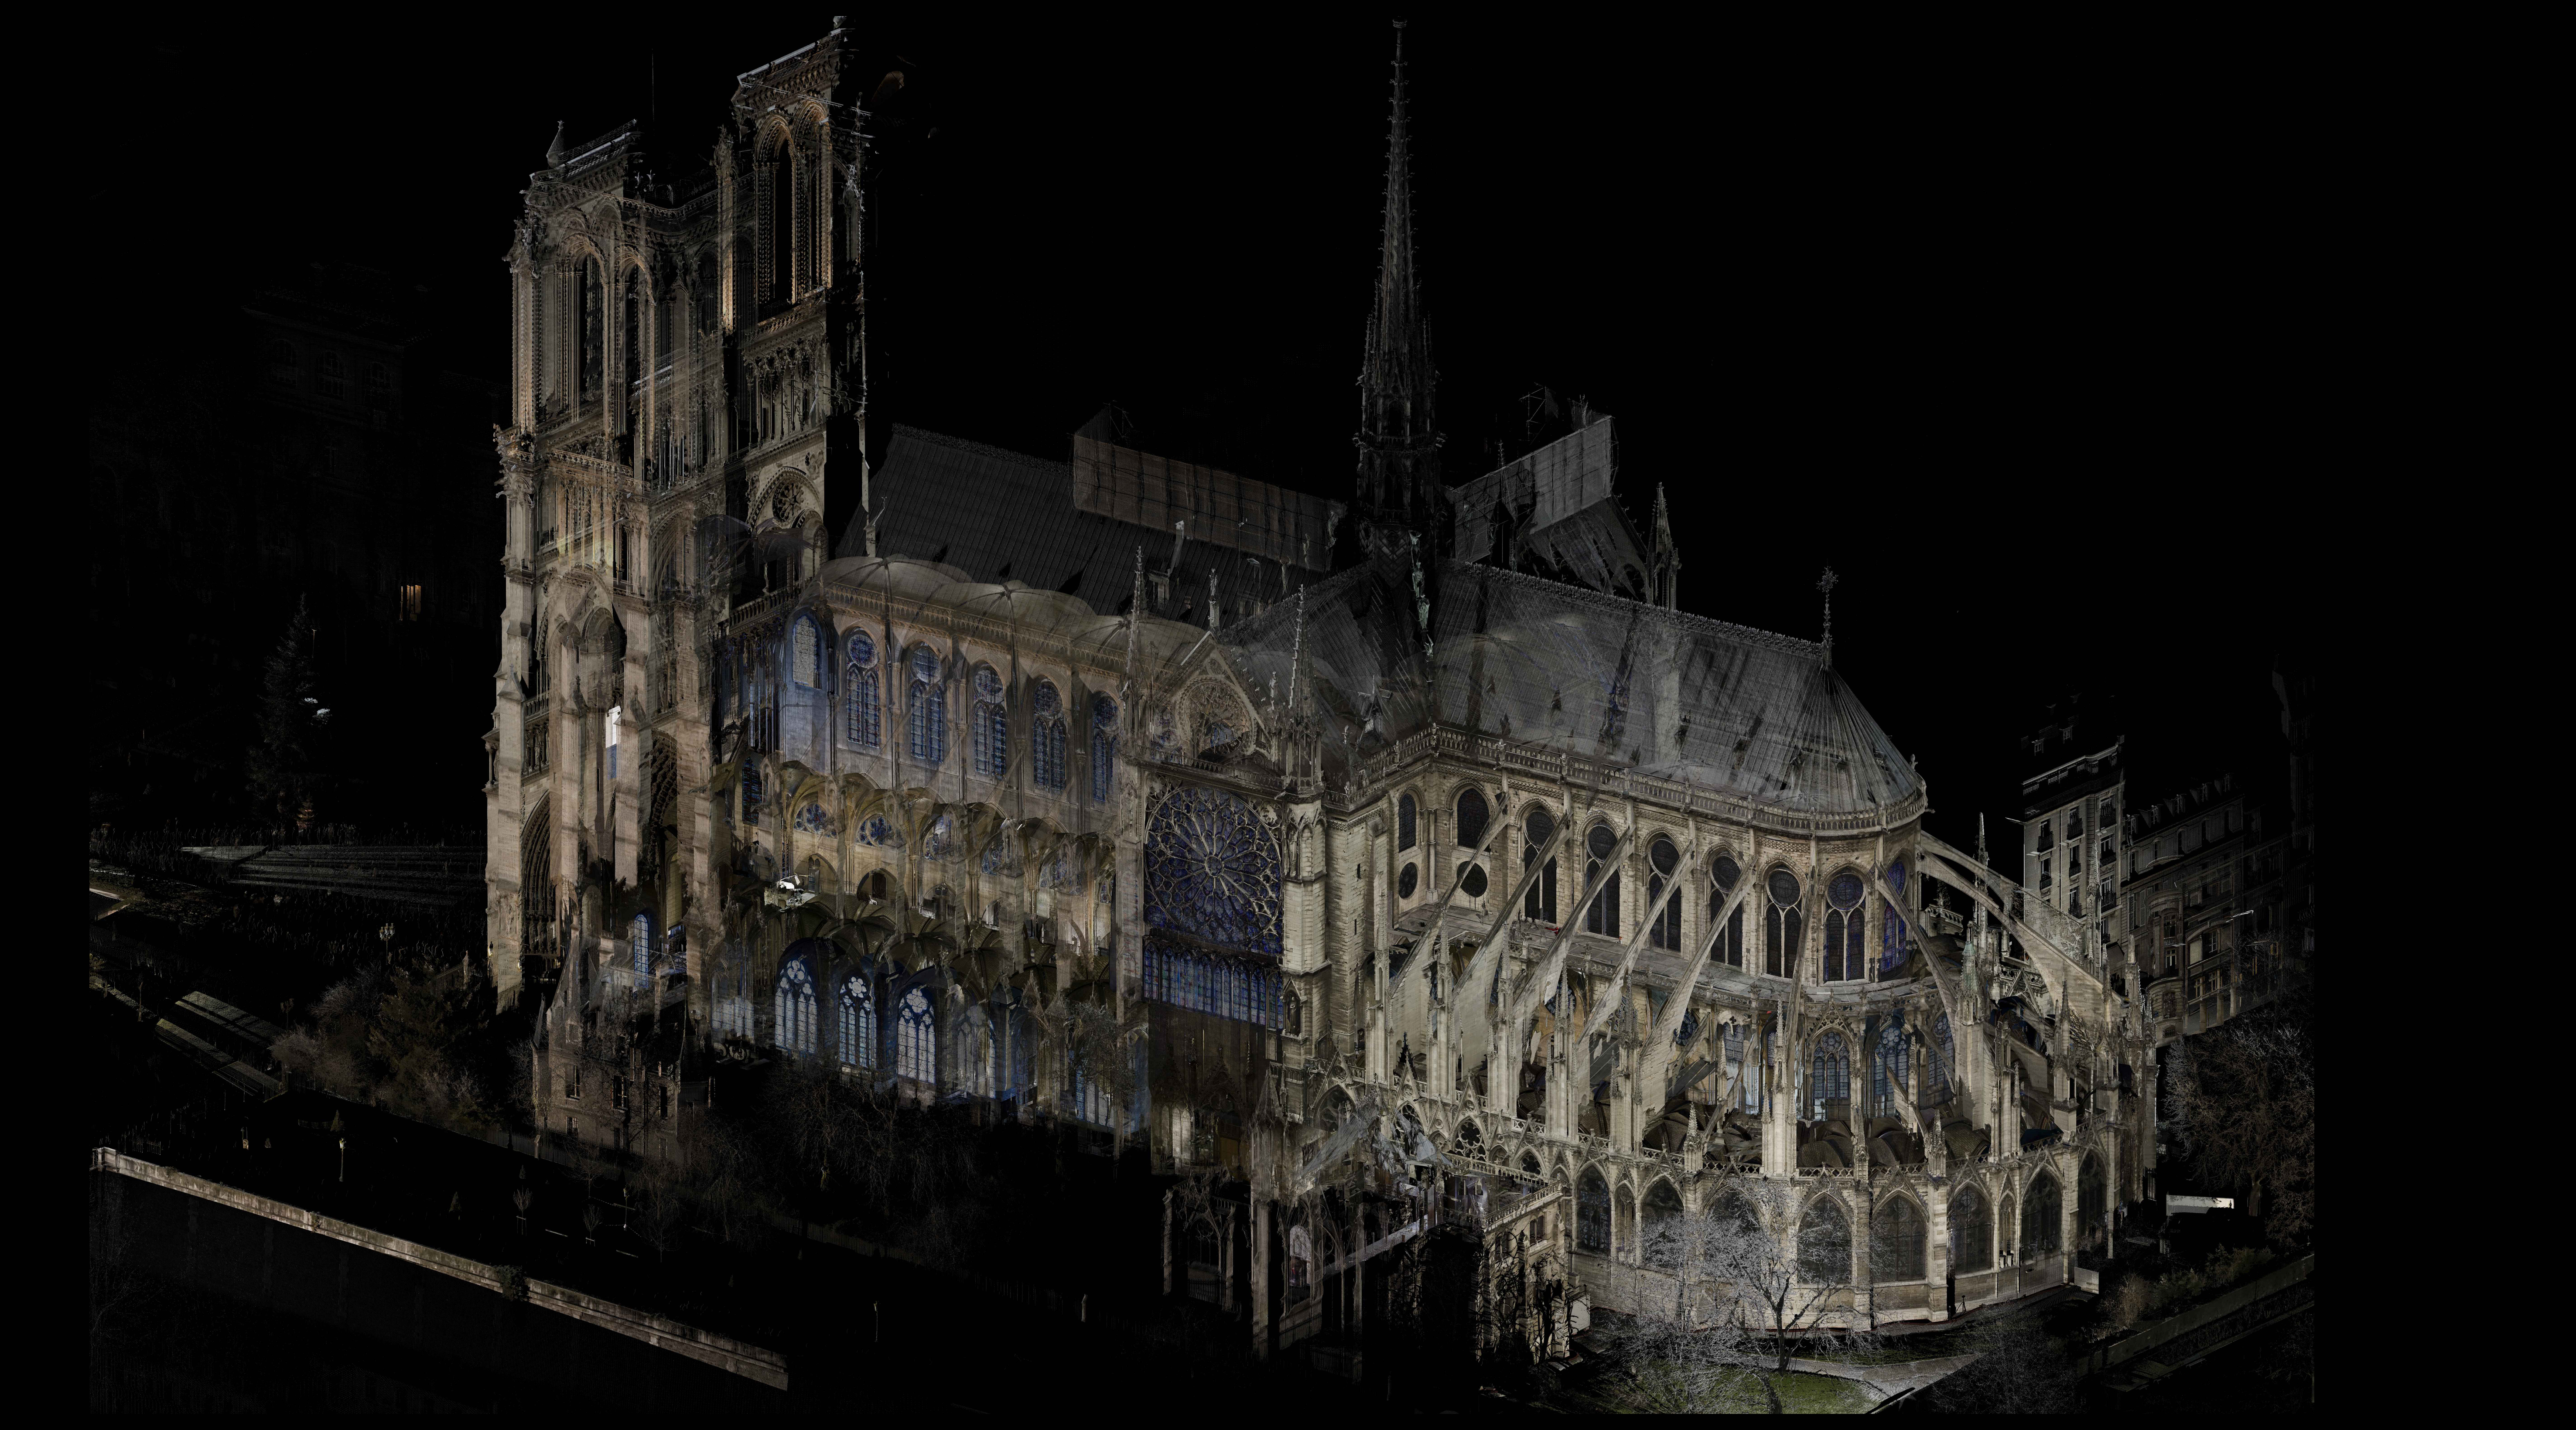 04 Notre Dame, Paris - Point cloud